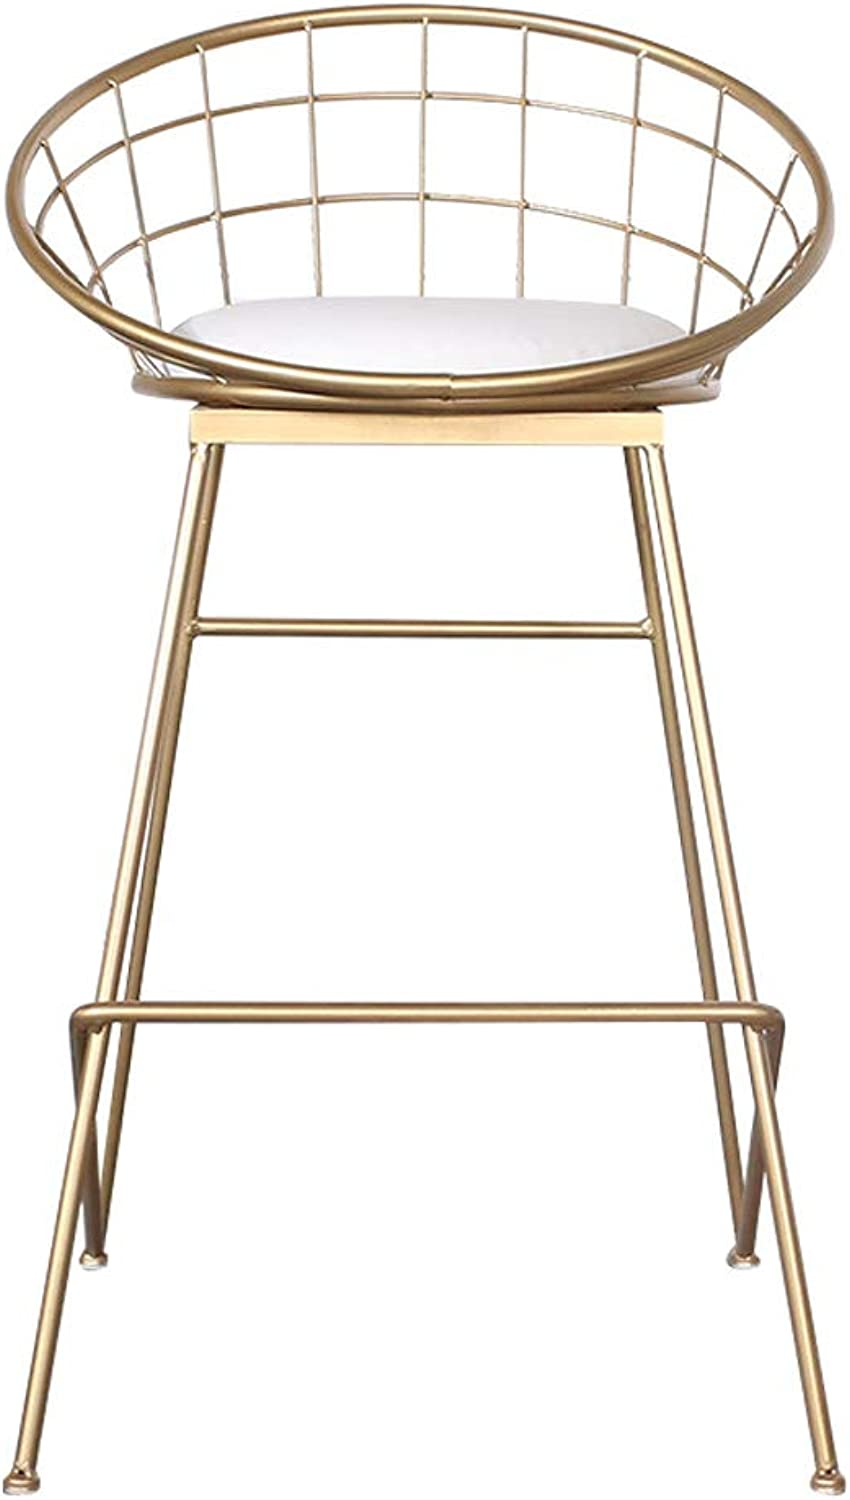 gold Bar Chairs Counter High Footrest Stools Modern Furniture Kitchen Breakfast Dining Chair Metal Legs and Linen Seat, Max.150kg